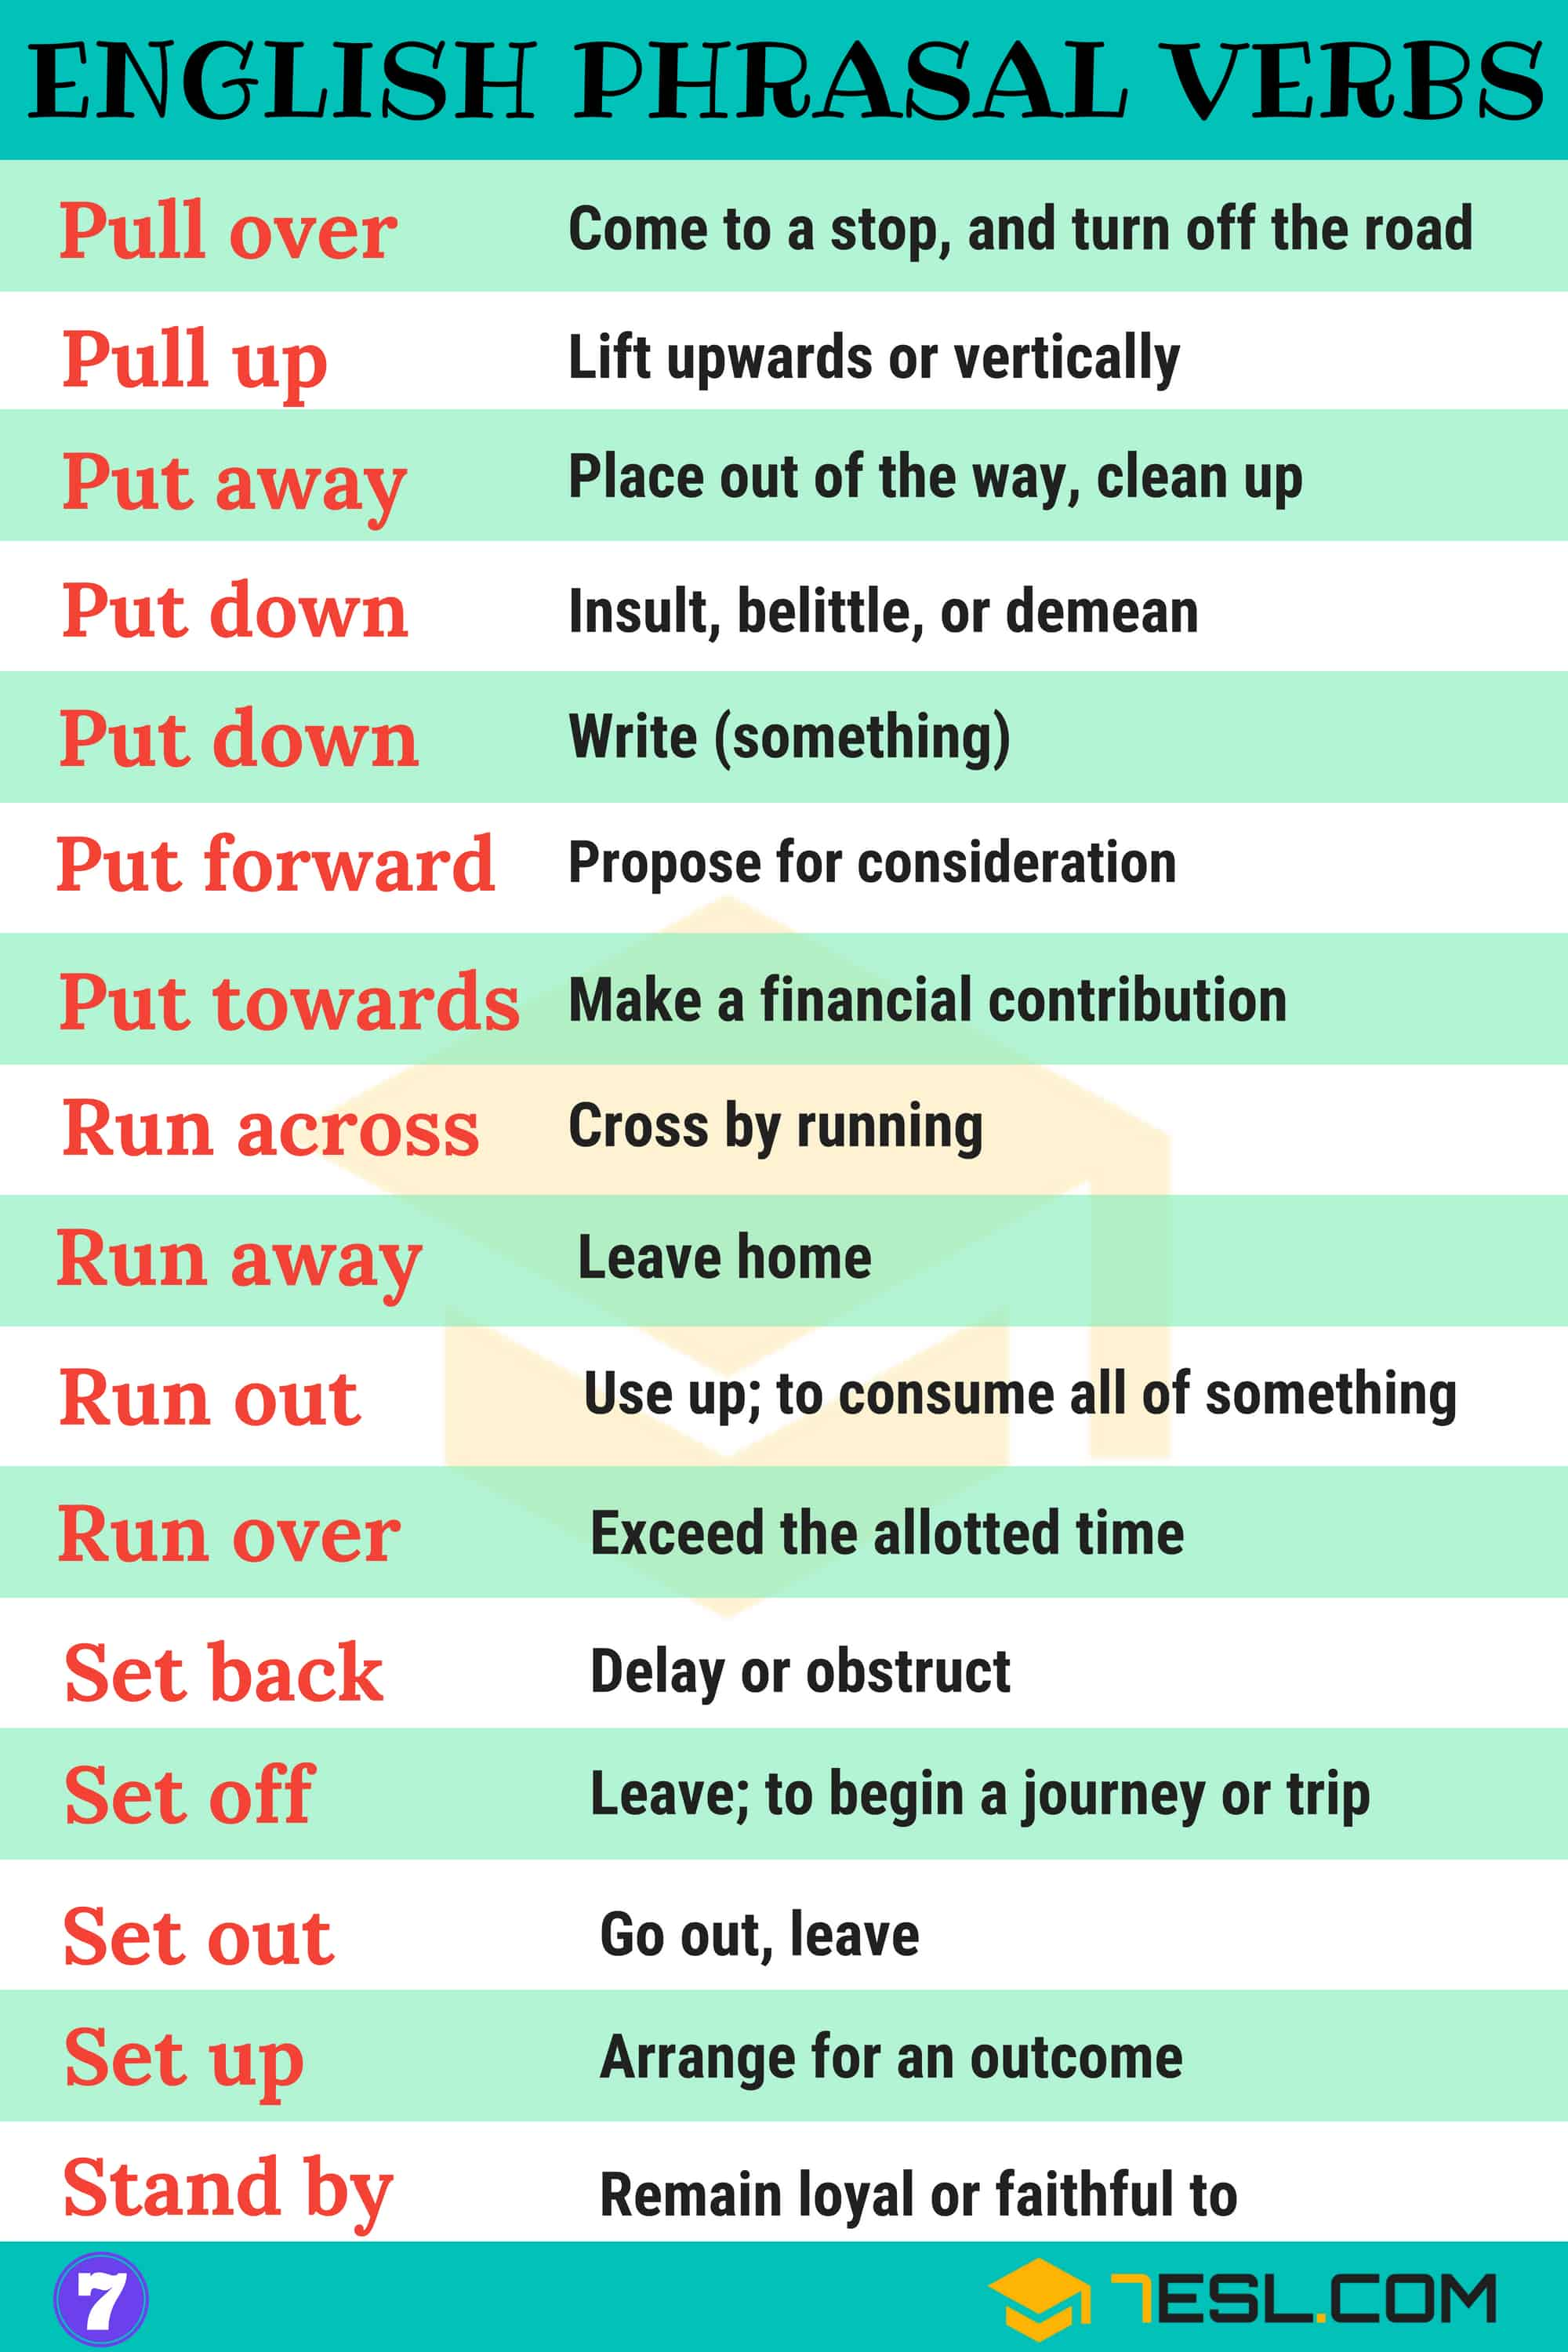 2000+ Common Phrasal Verbs List from A-Z - 7 E S L